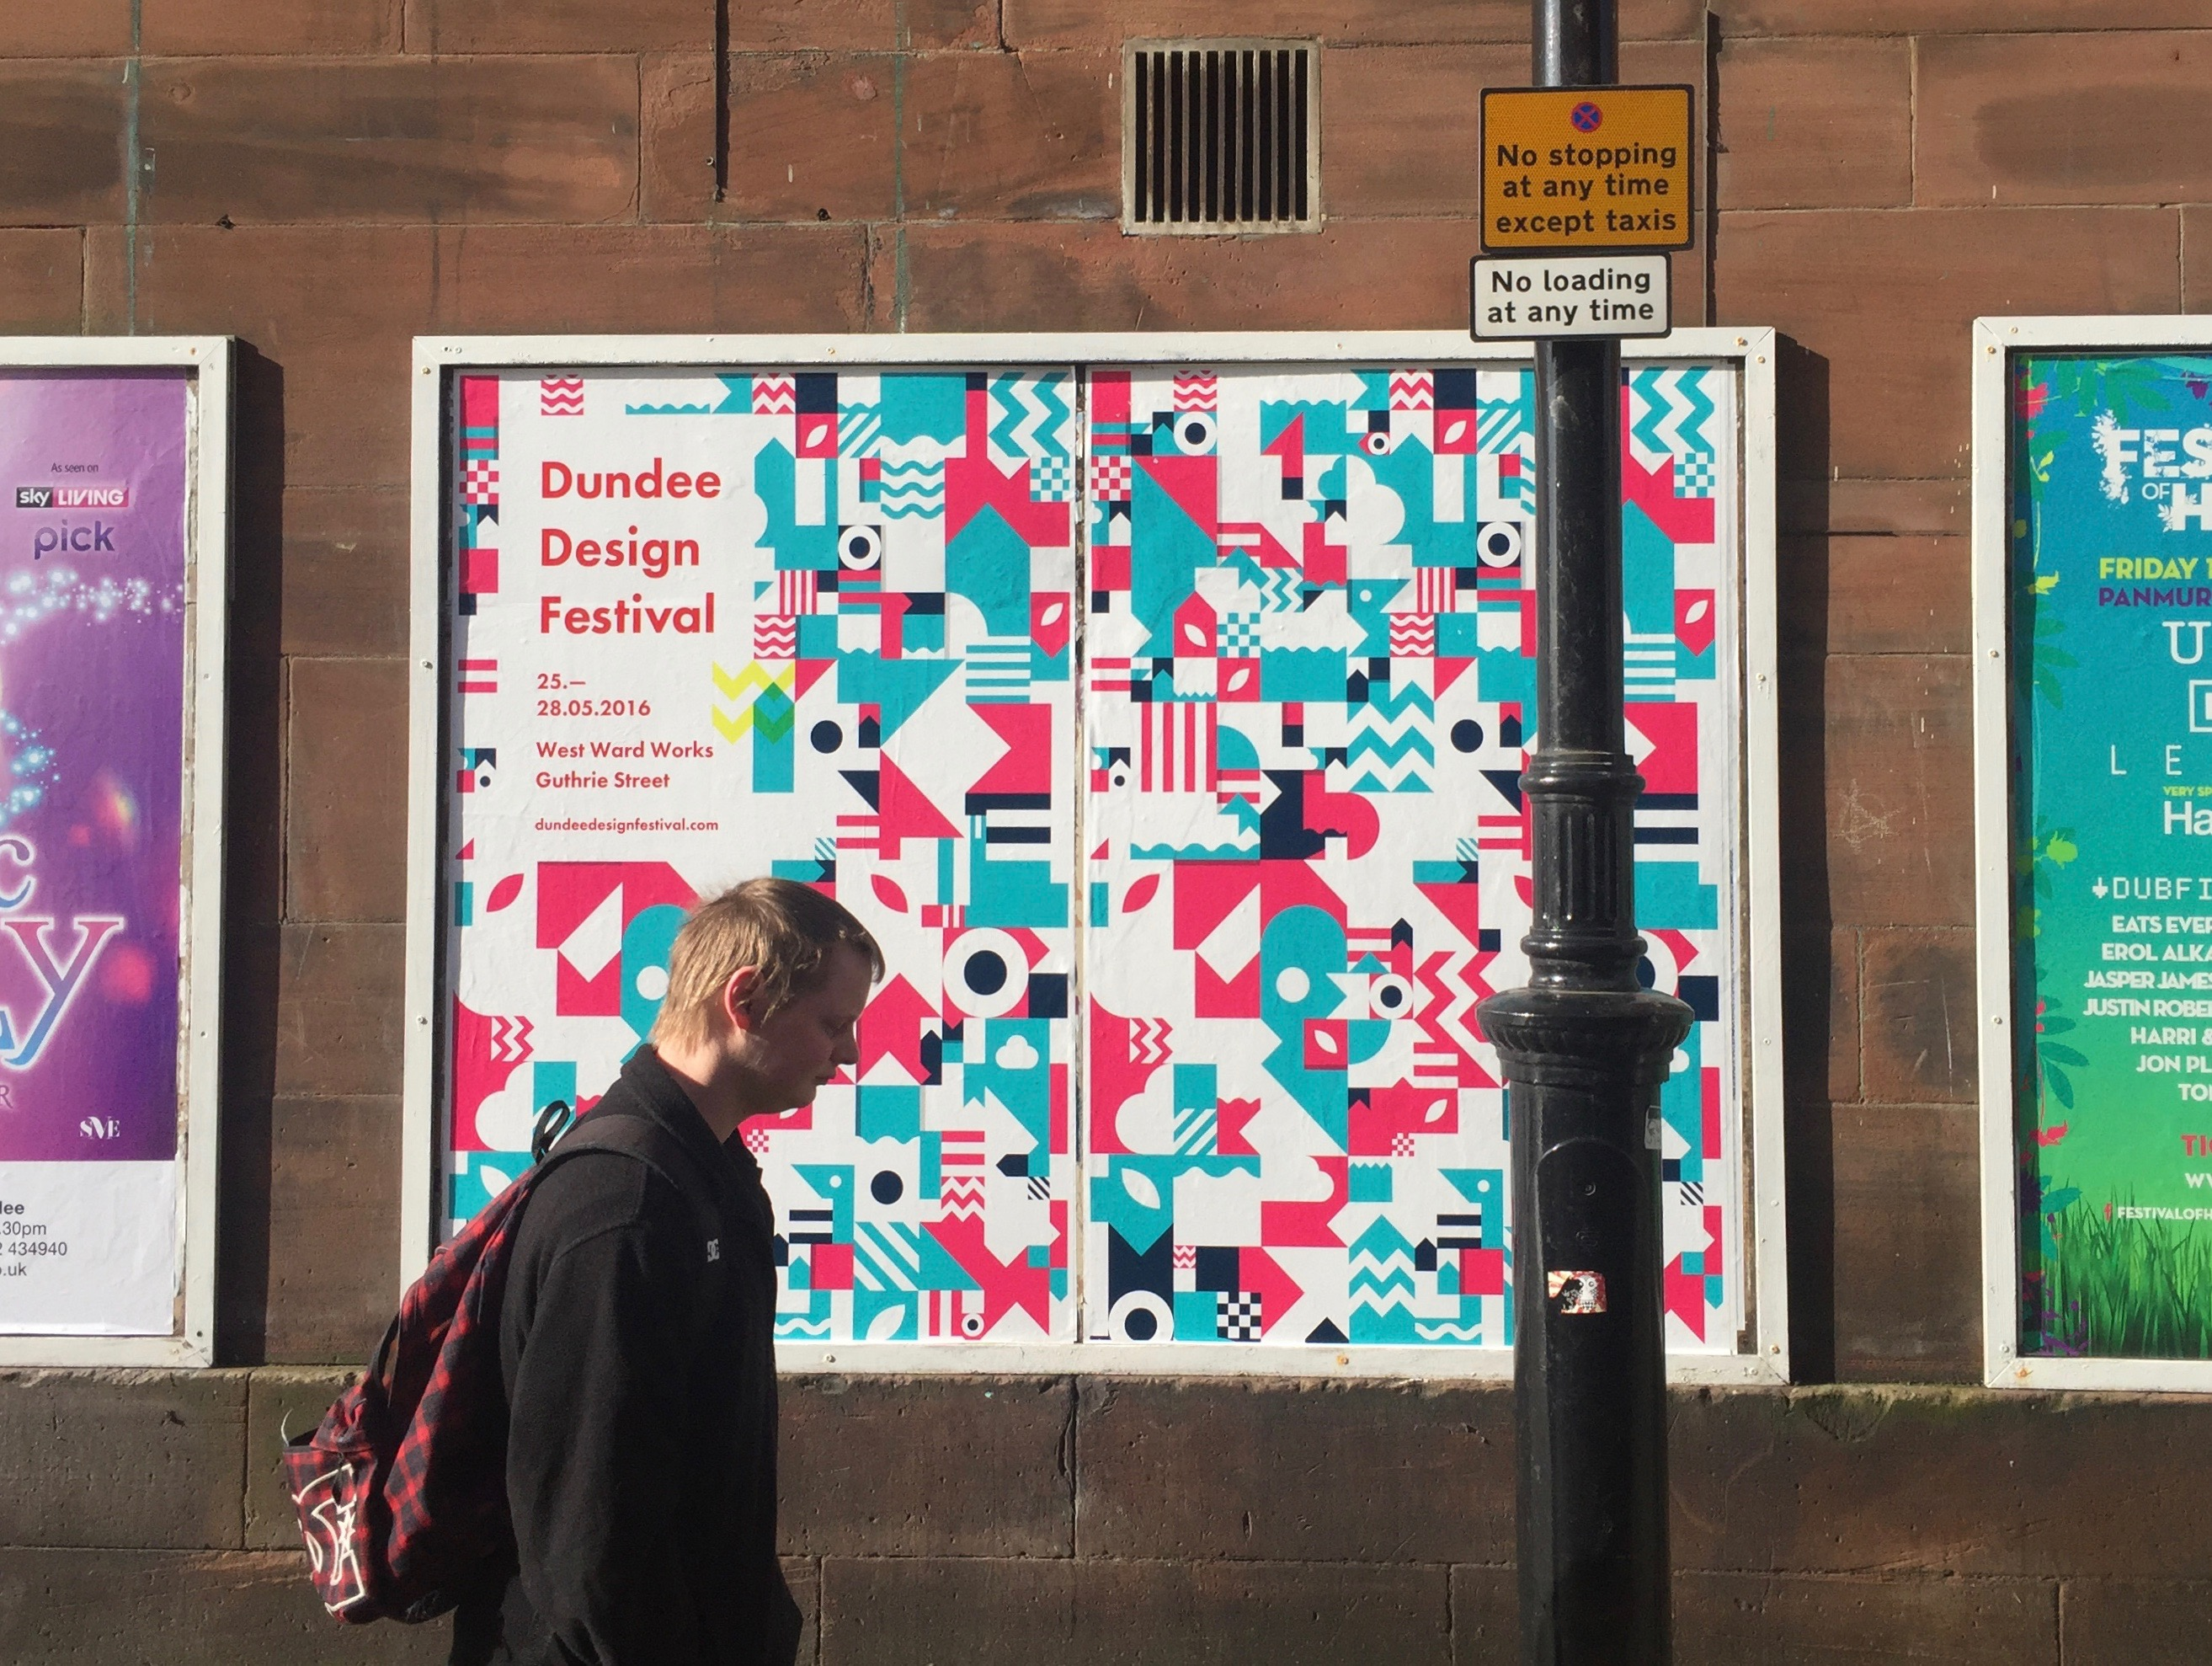 Dundee Design Festival Posters